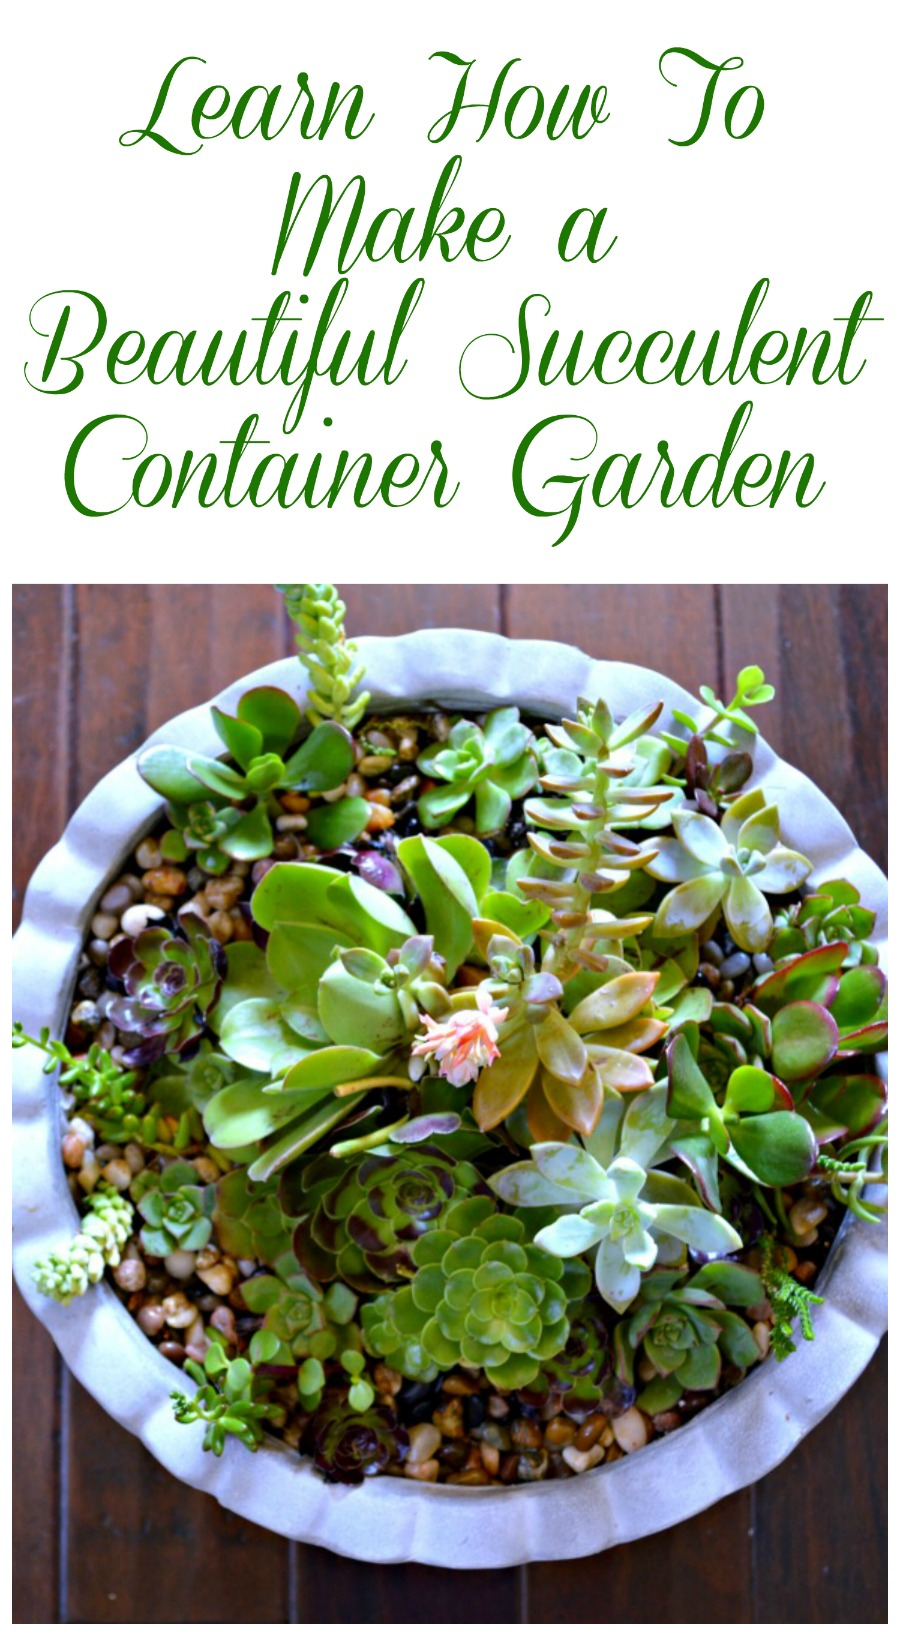 Diy succulent container garden my uncommon slice of suburbia - How to make a succulent container garden ...